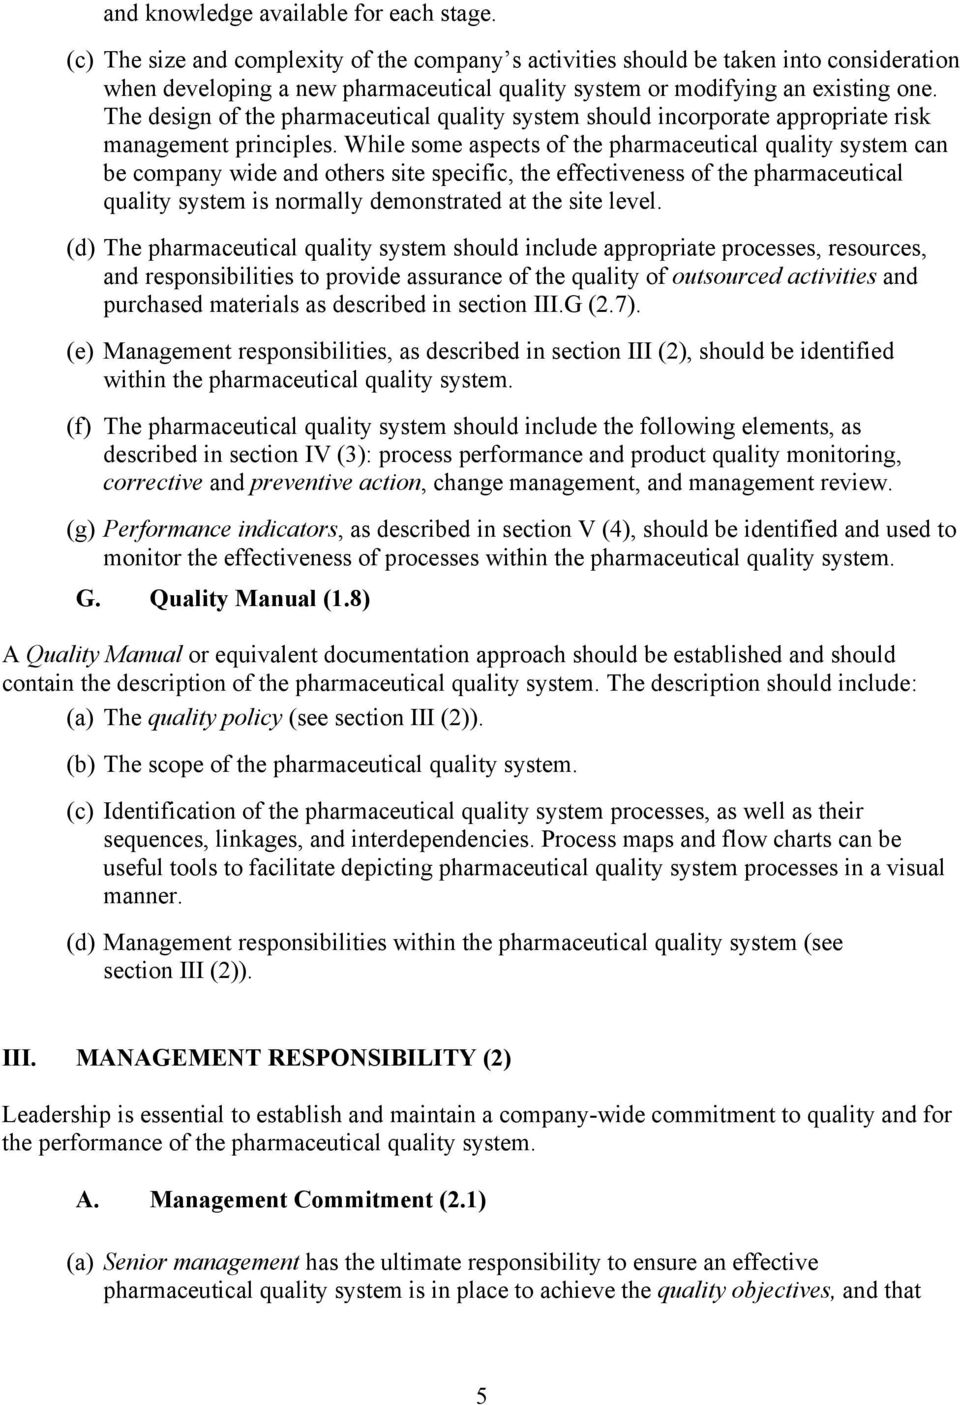 The design of the pharmaceutical quality system should incorporate appropriate risk management principles.